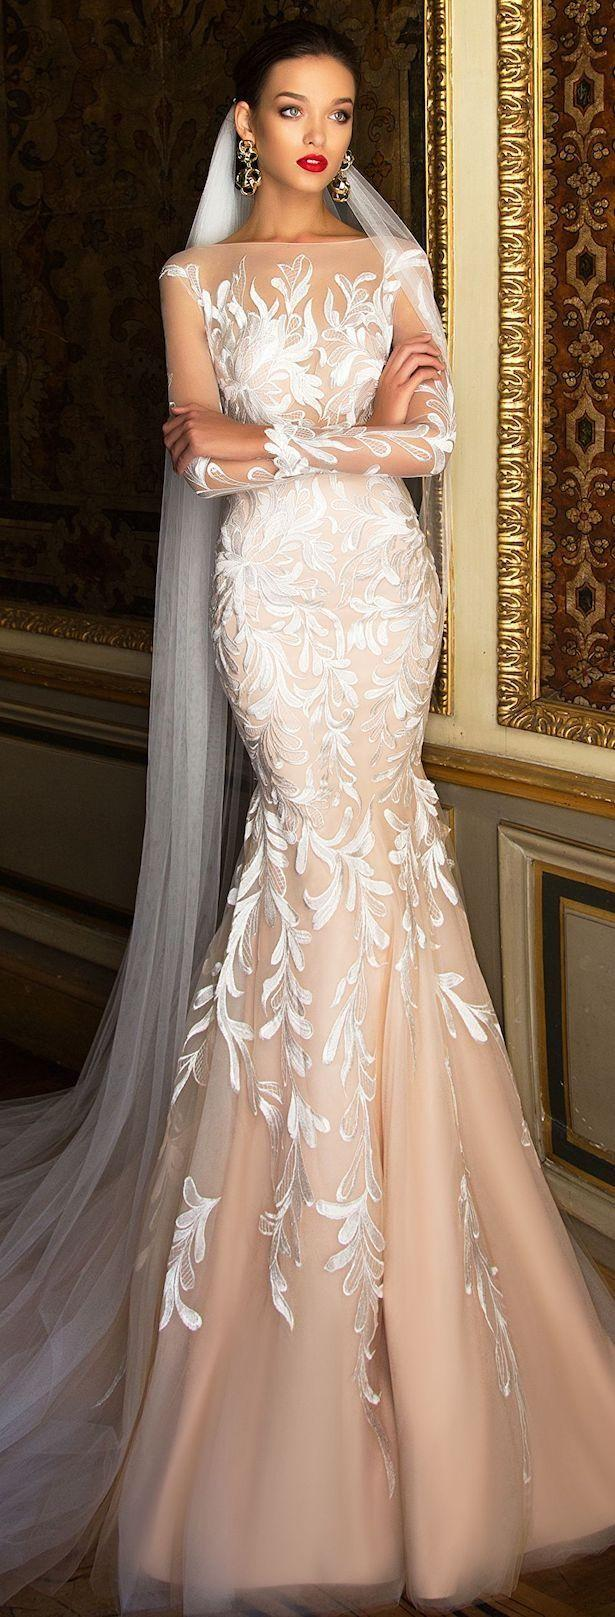 Mariage - Stunning Winter Wedding Dresses